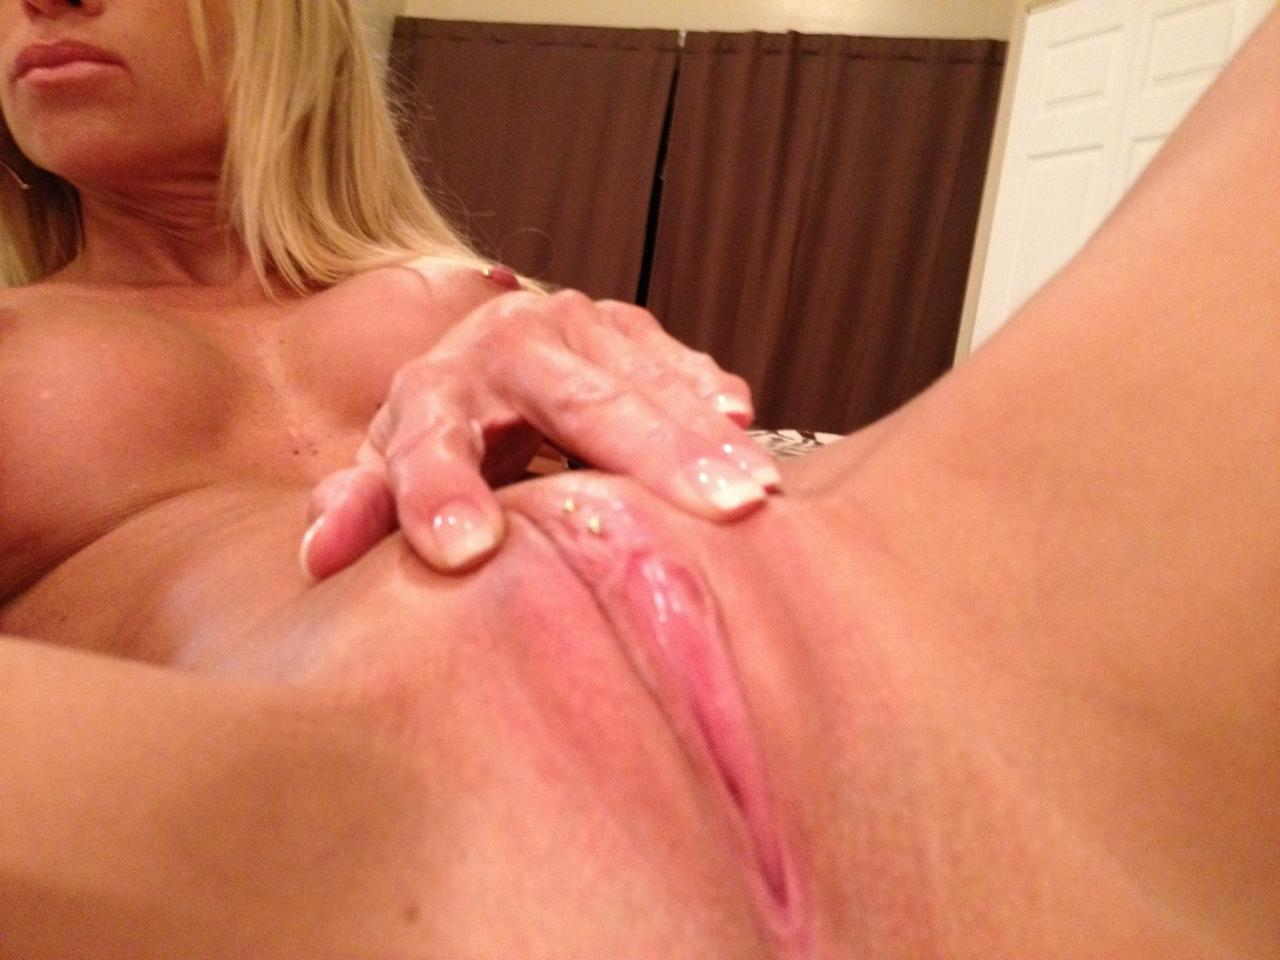 Julie Kicklighter Nude Photos Leaked, Spreading Pussy